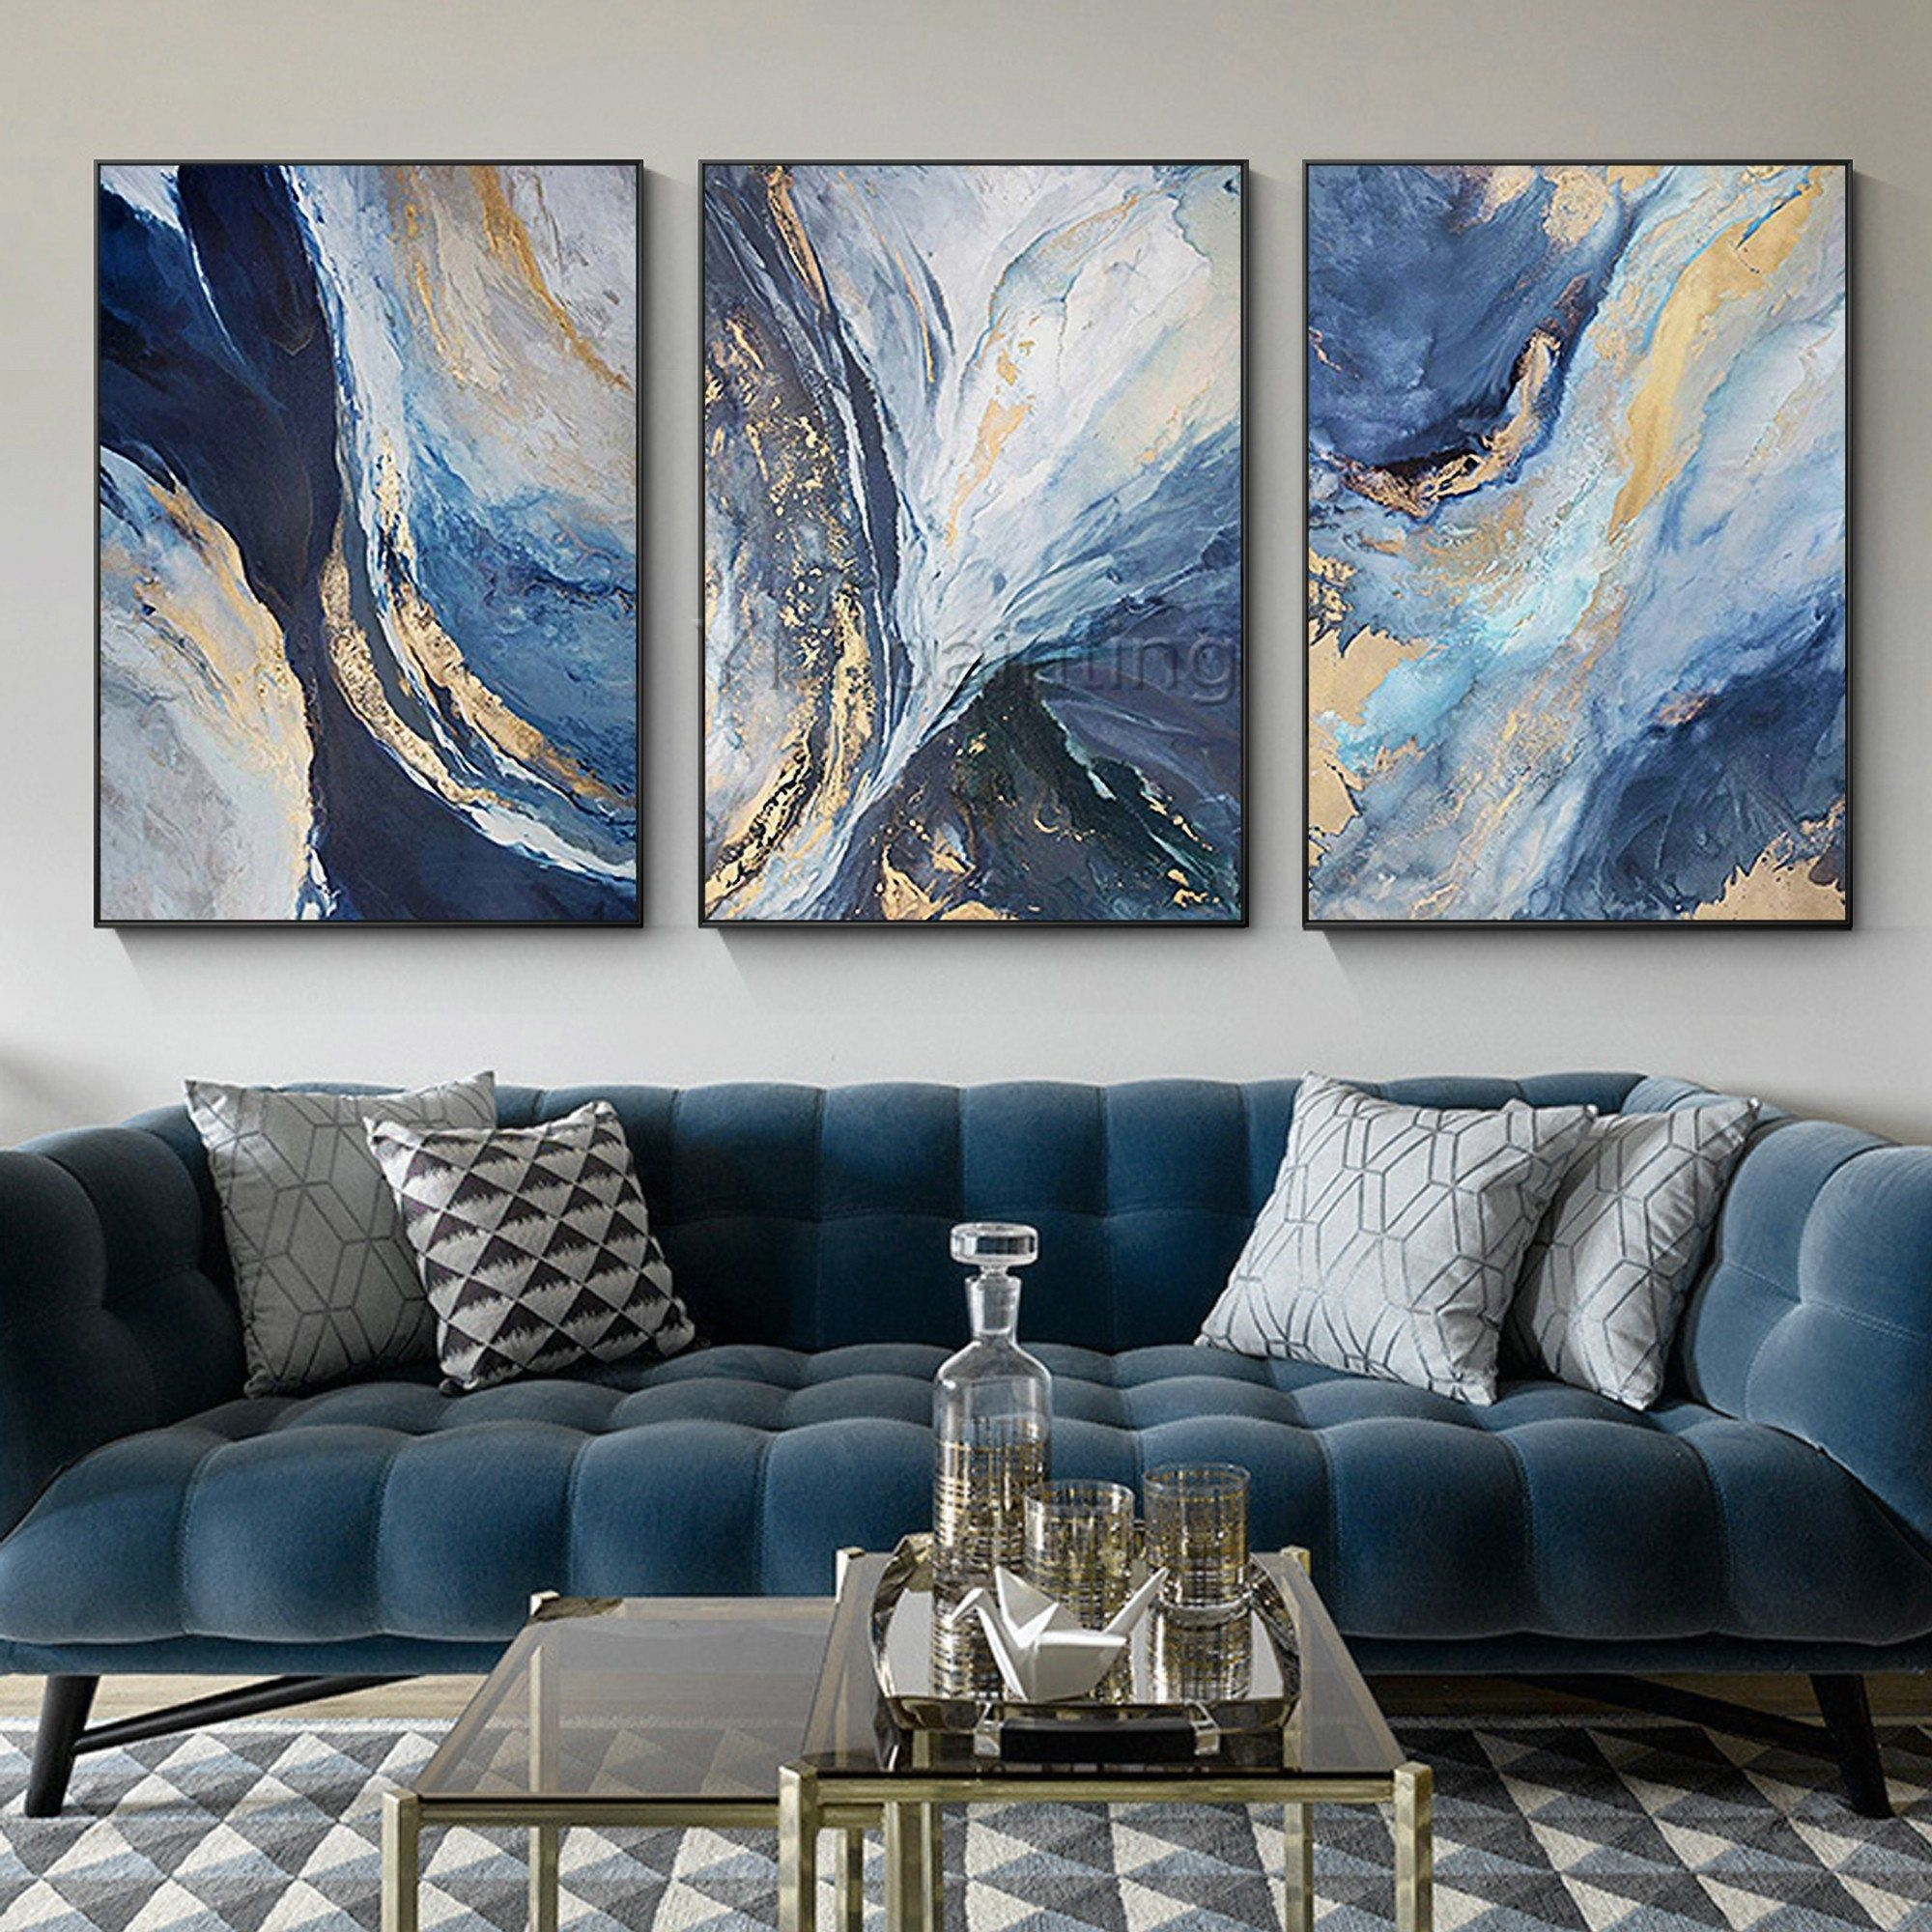 Gold Art 3 Pieces Wall Art Abstract Acrylic Paintings On Canvas Ocean Blue Painting Set O Blue Living Room Decor Abstract Wall Art Living Room 3 Piece Wall Art